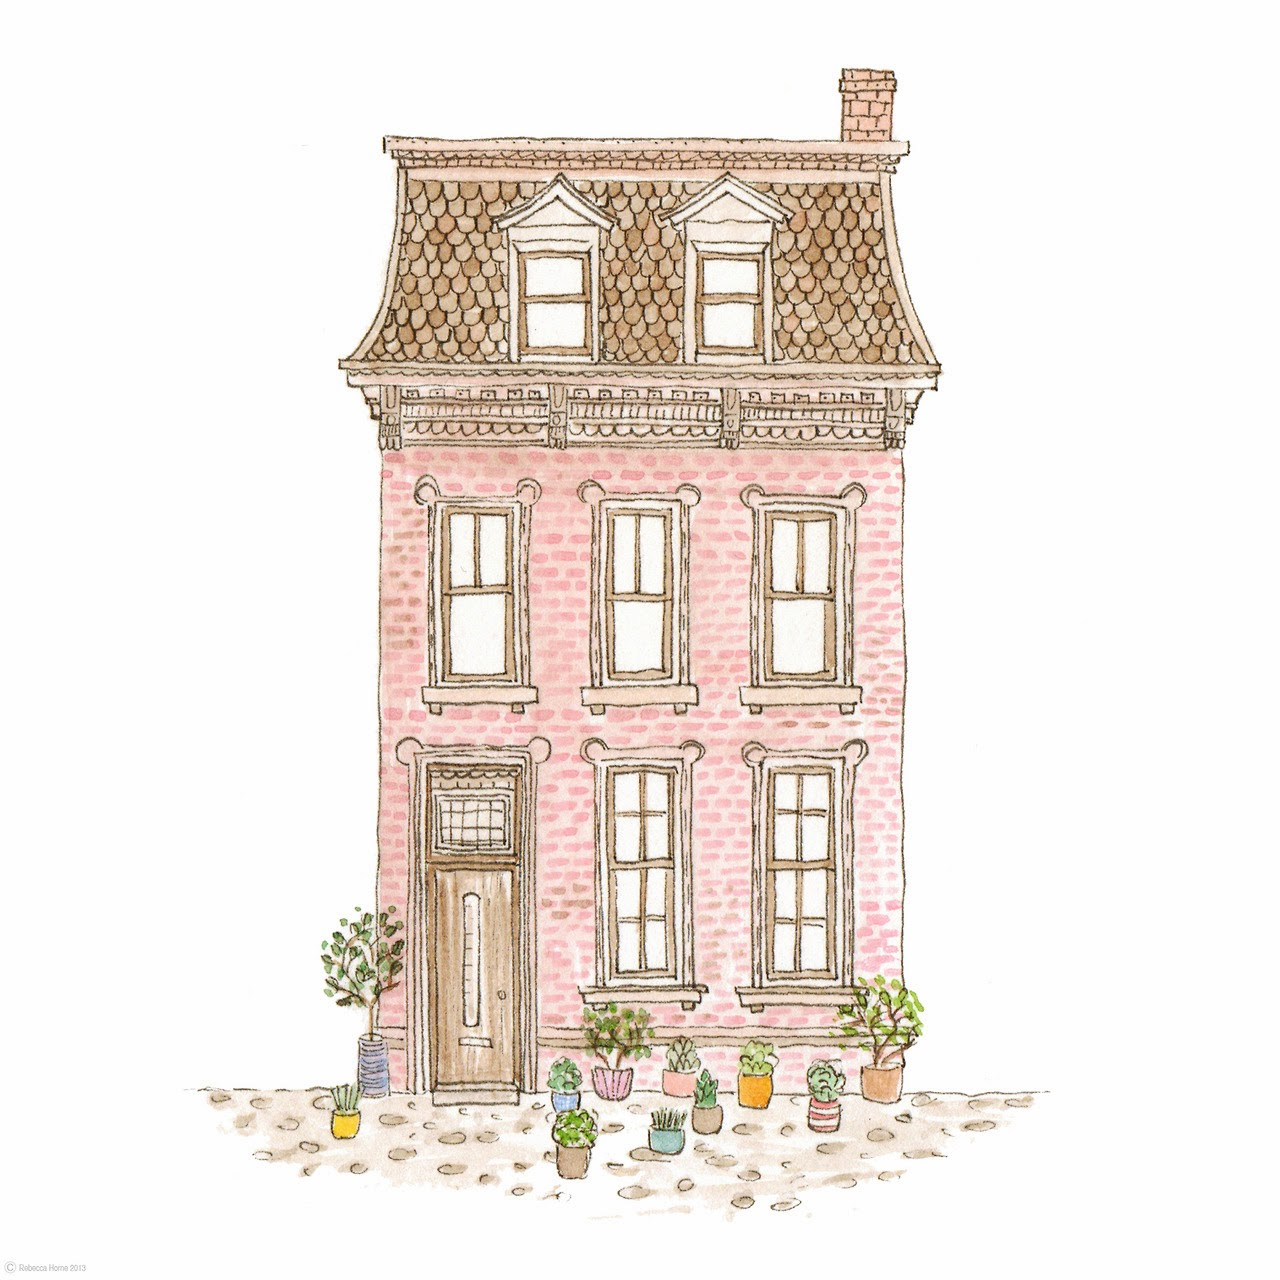 Lovesut pinturas perfeitas for How to draw a cute house